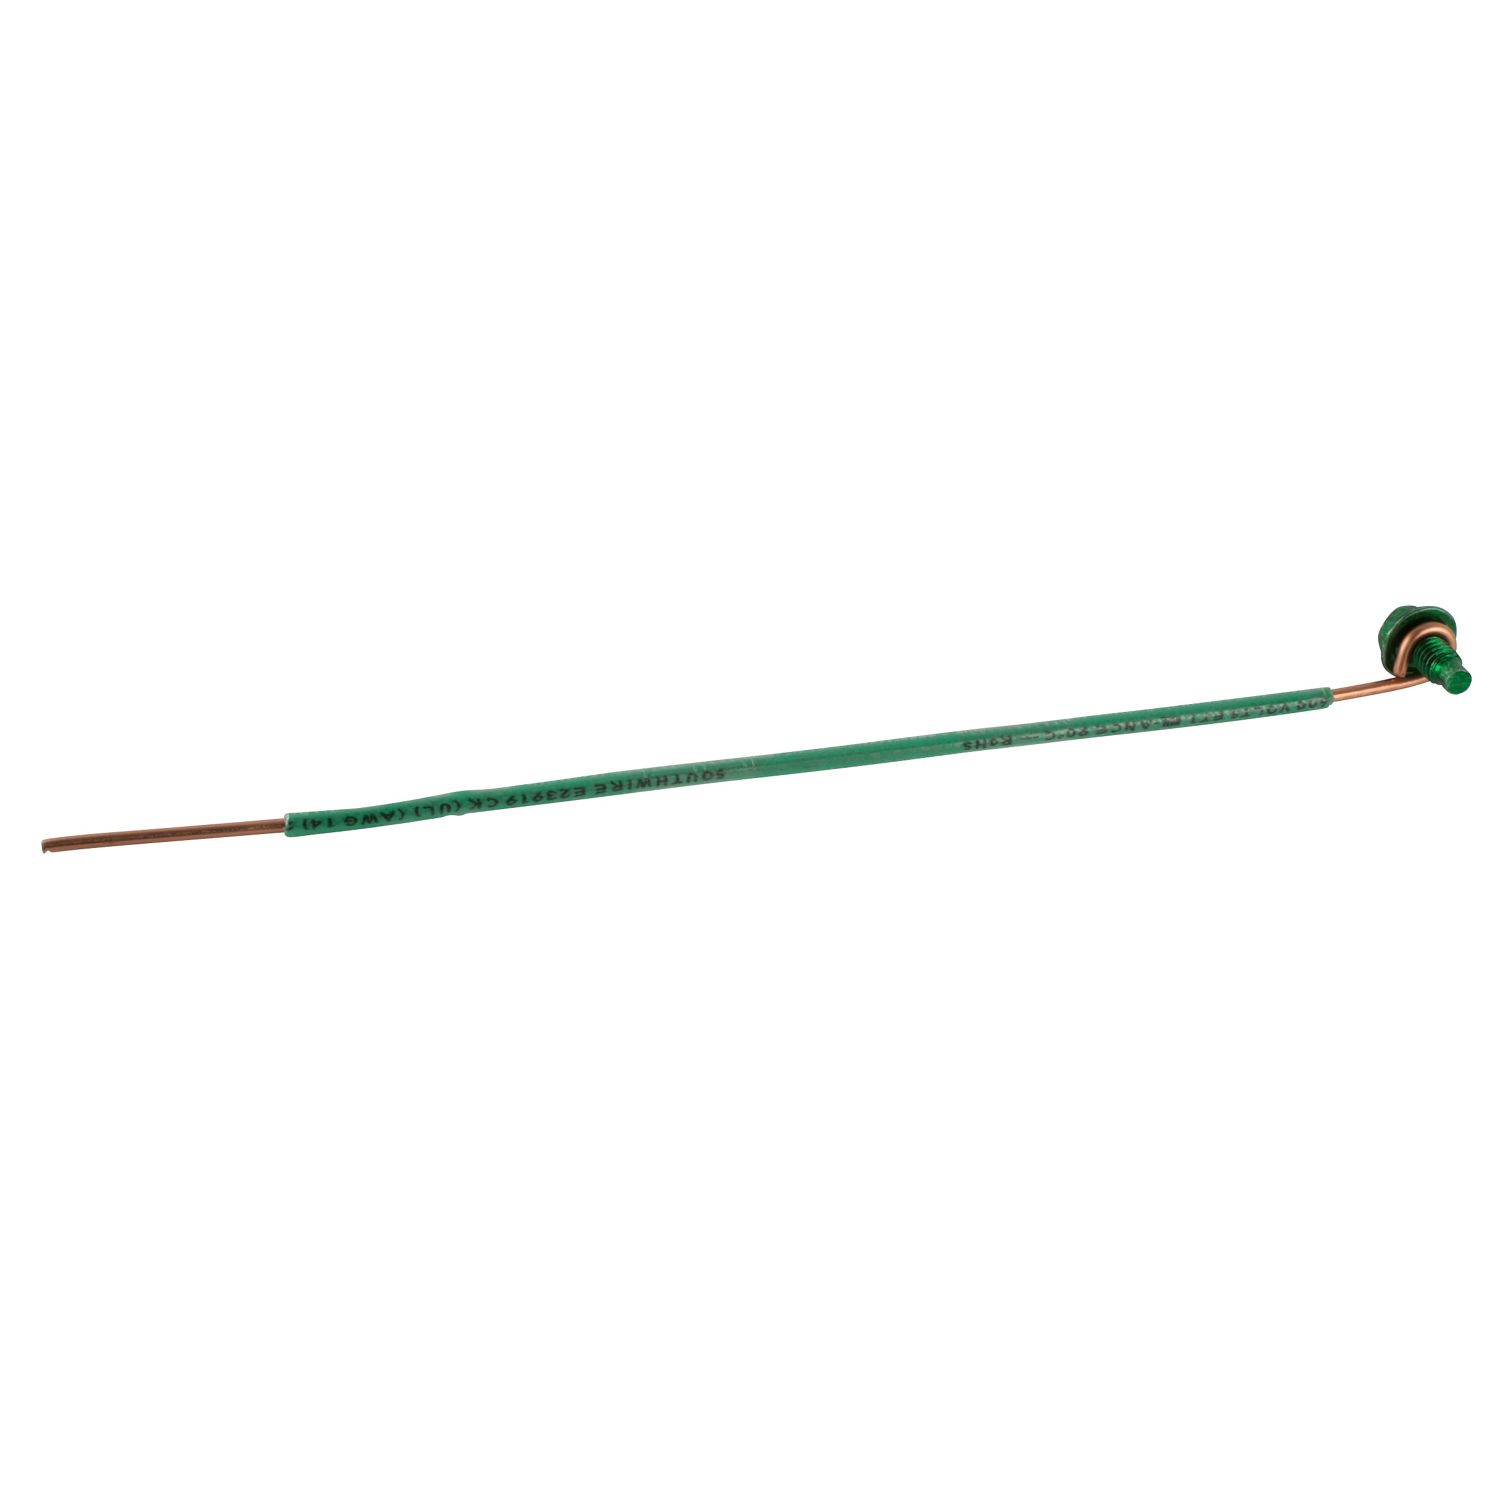 STCGSC-14 6 INCH #14 AWG INSULATED SOLID WIRE WITH GROUNDING SCREW. 10-32 X 3/8 INCH SLOTTED HEXAGON HEAD WASHER FACE SCREW WITH GREEN DYE FINISH., STEEL CITY